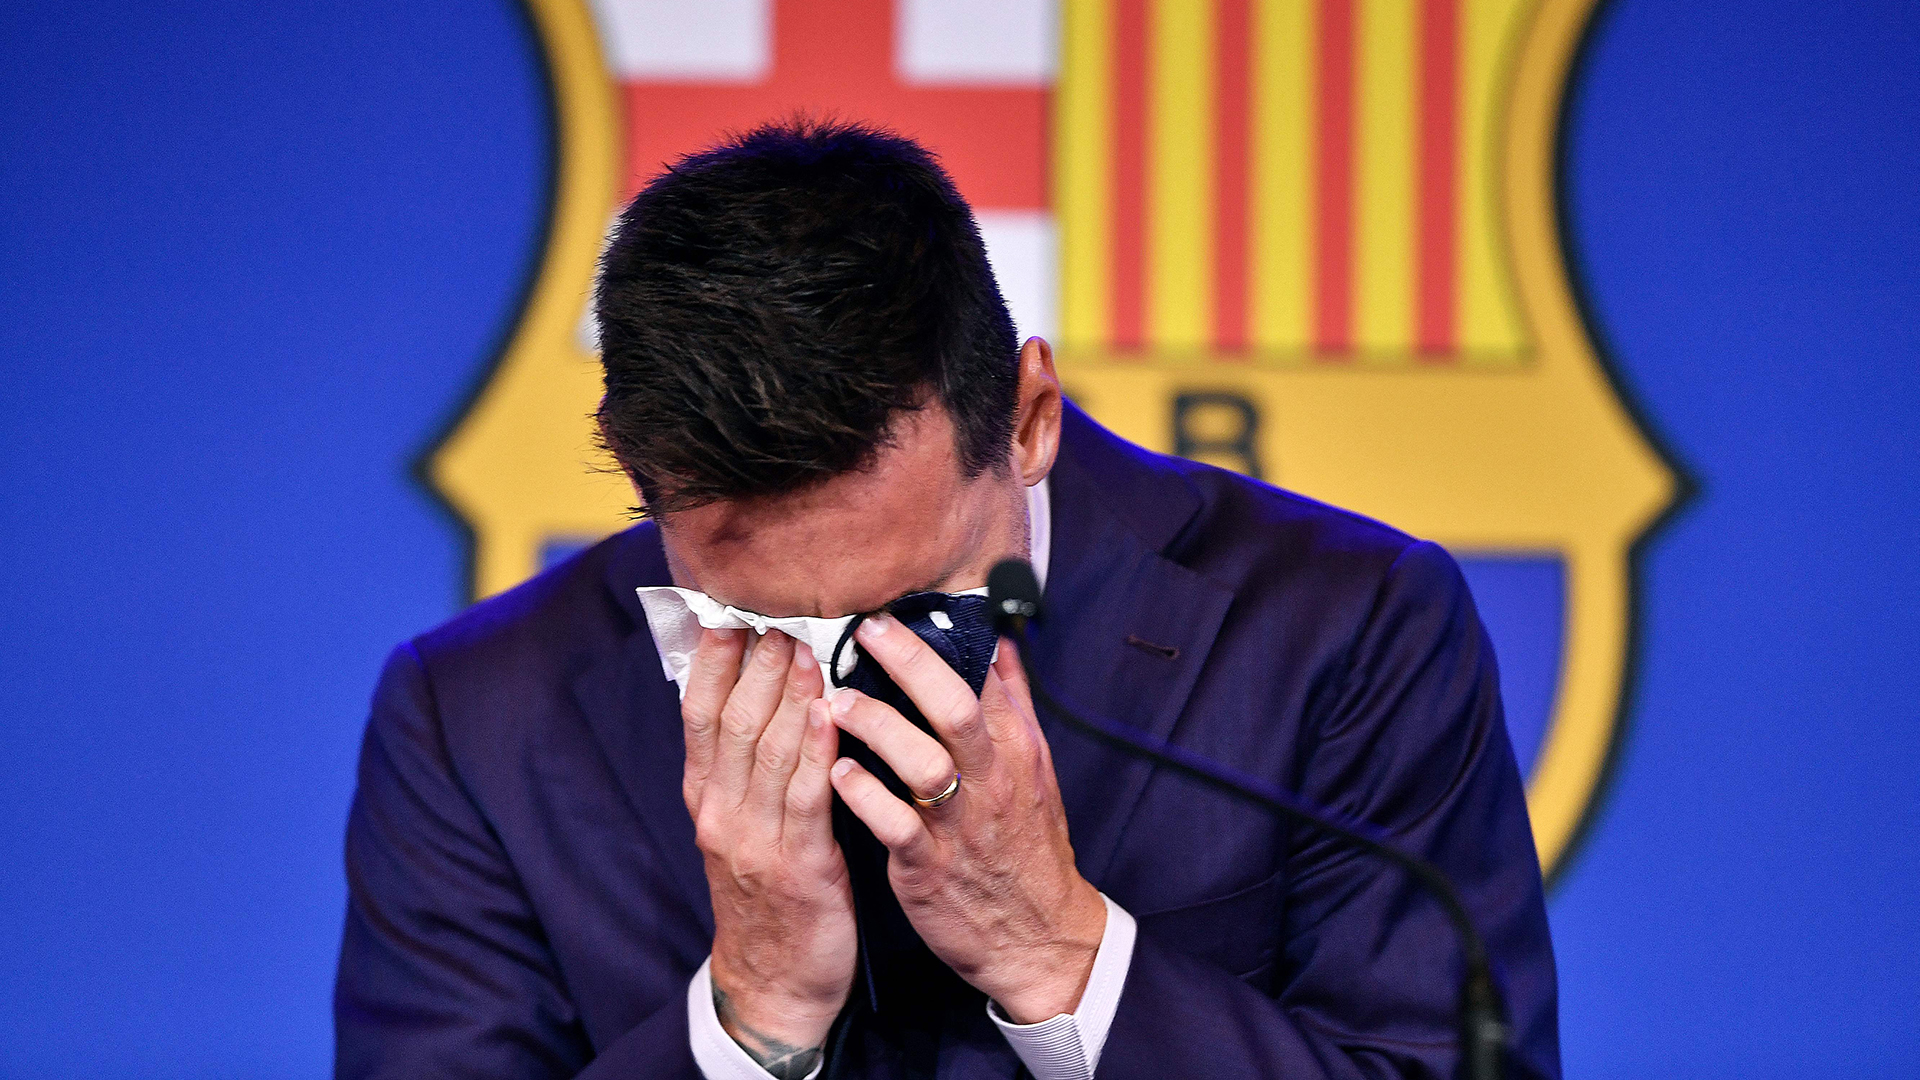 Fan View: Must he always play at Barcelona? - Mixed reactions after Messi's emotional presser